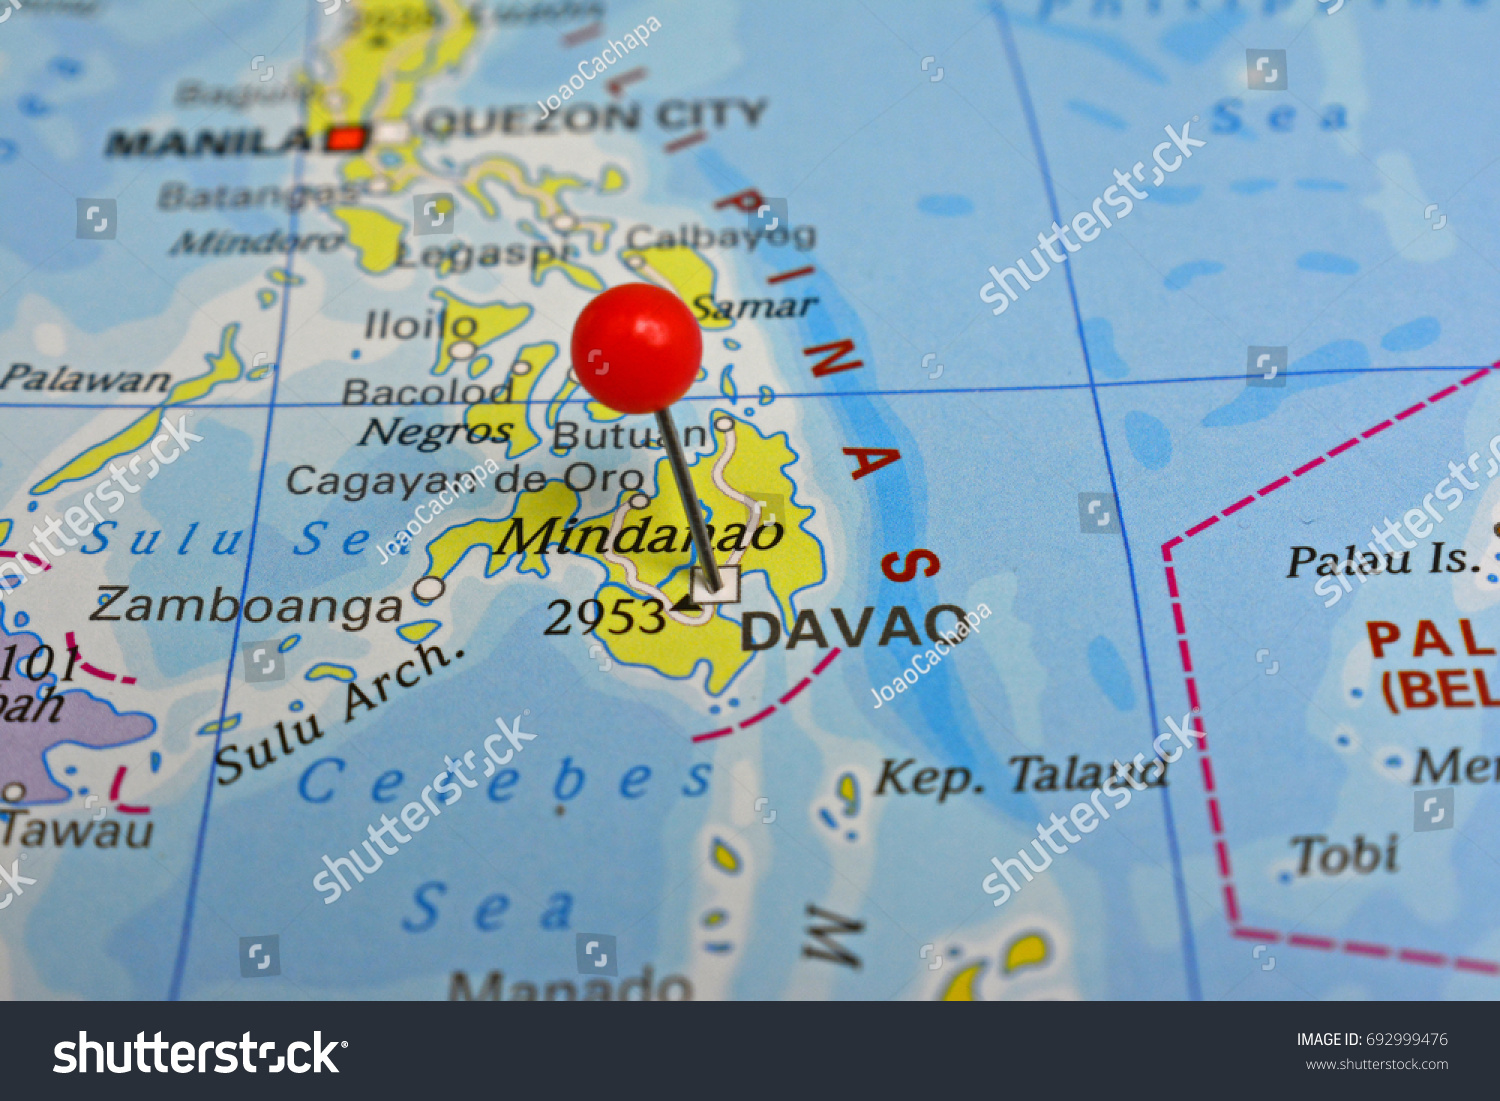 Pin marked davao city philippines stock photo royalty free pin marked davao city philippines stock photo royalty free 692999476 shutterstock gumiabroncs Image collections